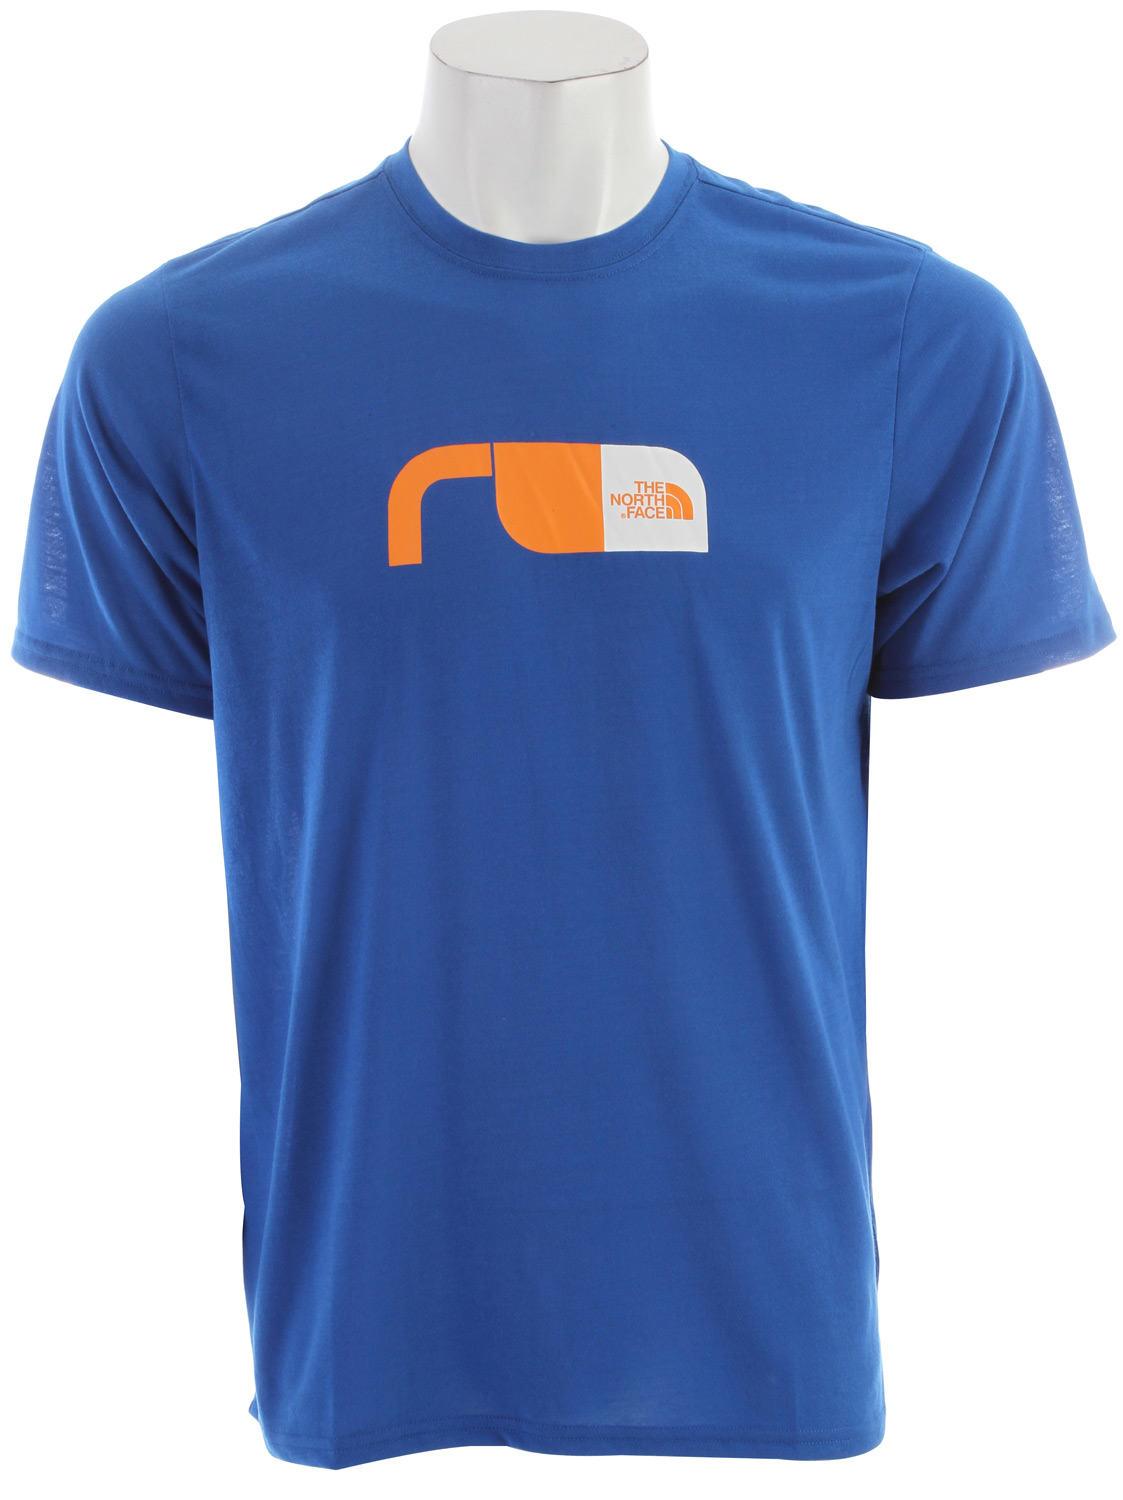 "Short-sleeve VaporWick tee provides excellent moisture management with a comfortable cotton feel, perfect for in-the-gym training.   Key Features of the The North Face Graphic Reaxion Crew T-Shirt: Soft, ultralight fabric Relaxed fit Set-in sleeves Drop-tail hem Locker loop Center back: 27.5"" Fabric: 140 g/m² 100% polyester jersey - $16.95"